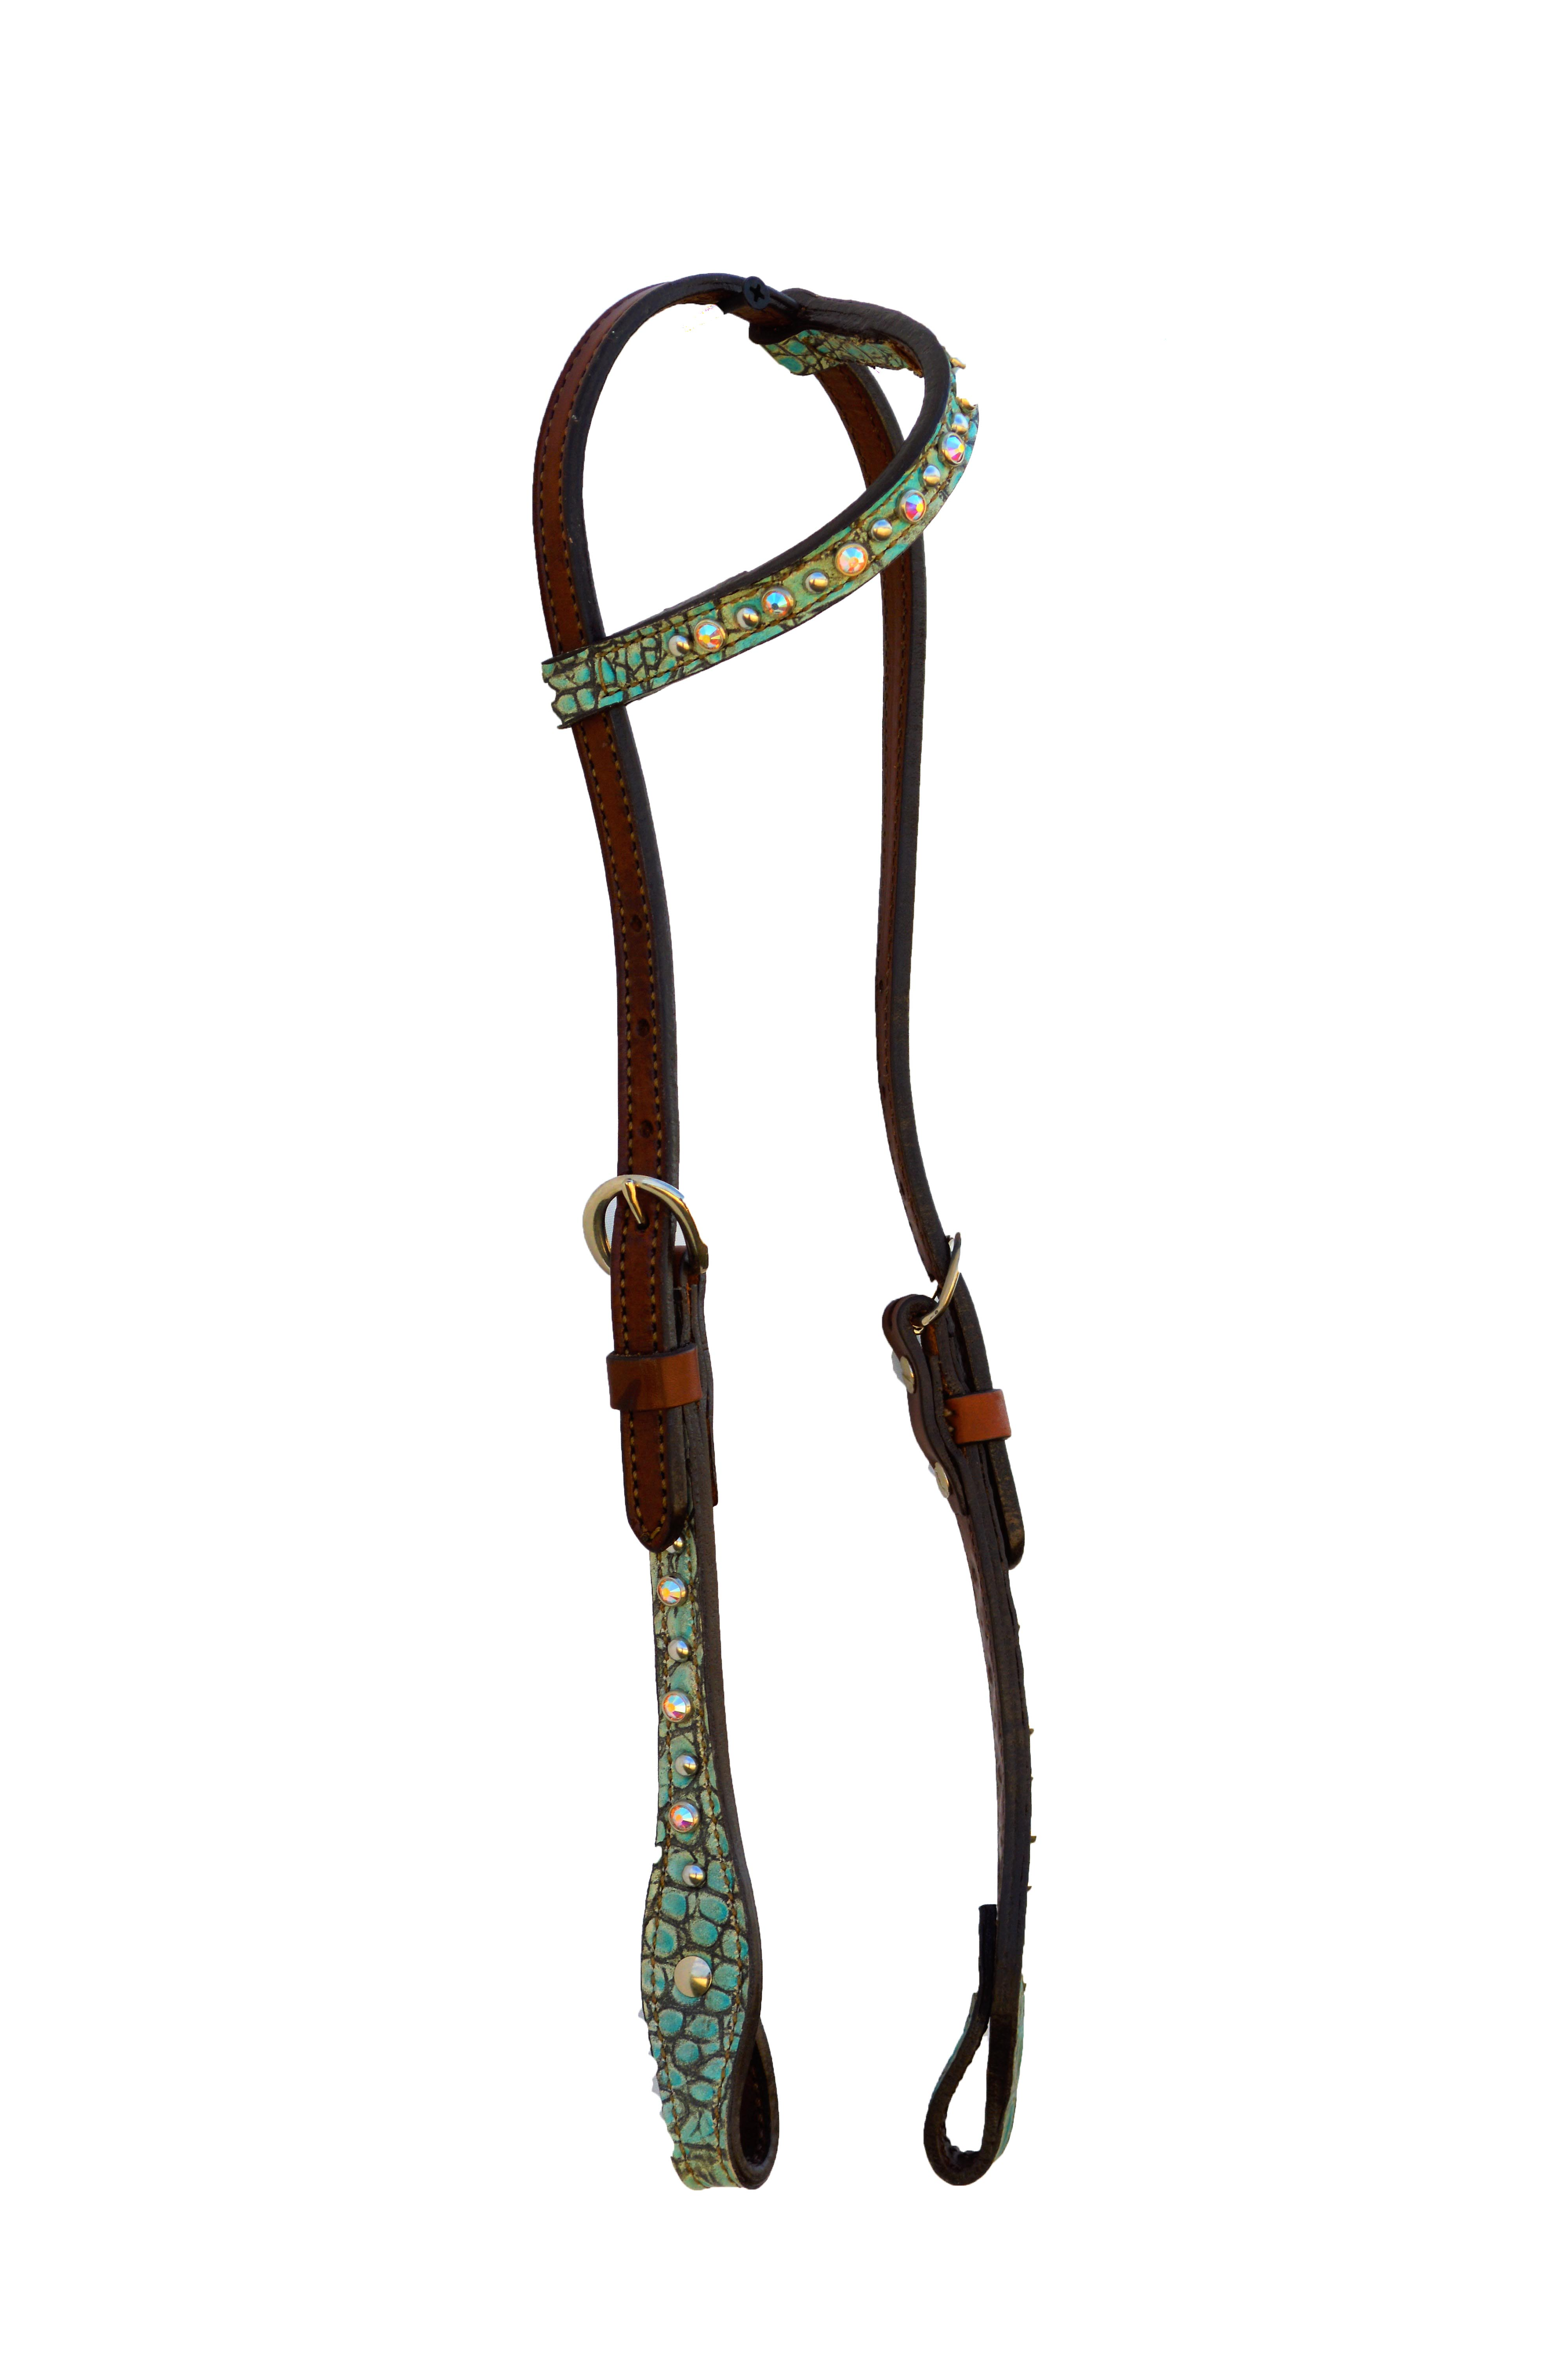 ONE EAR HEADSTALL WITH TURQUOISE GATOR OVERLAY